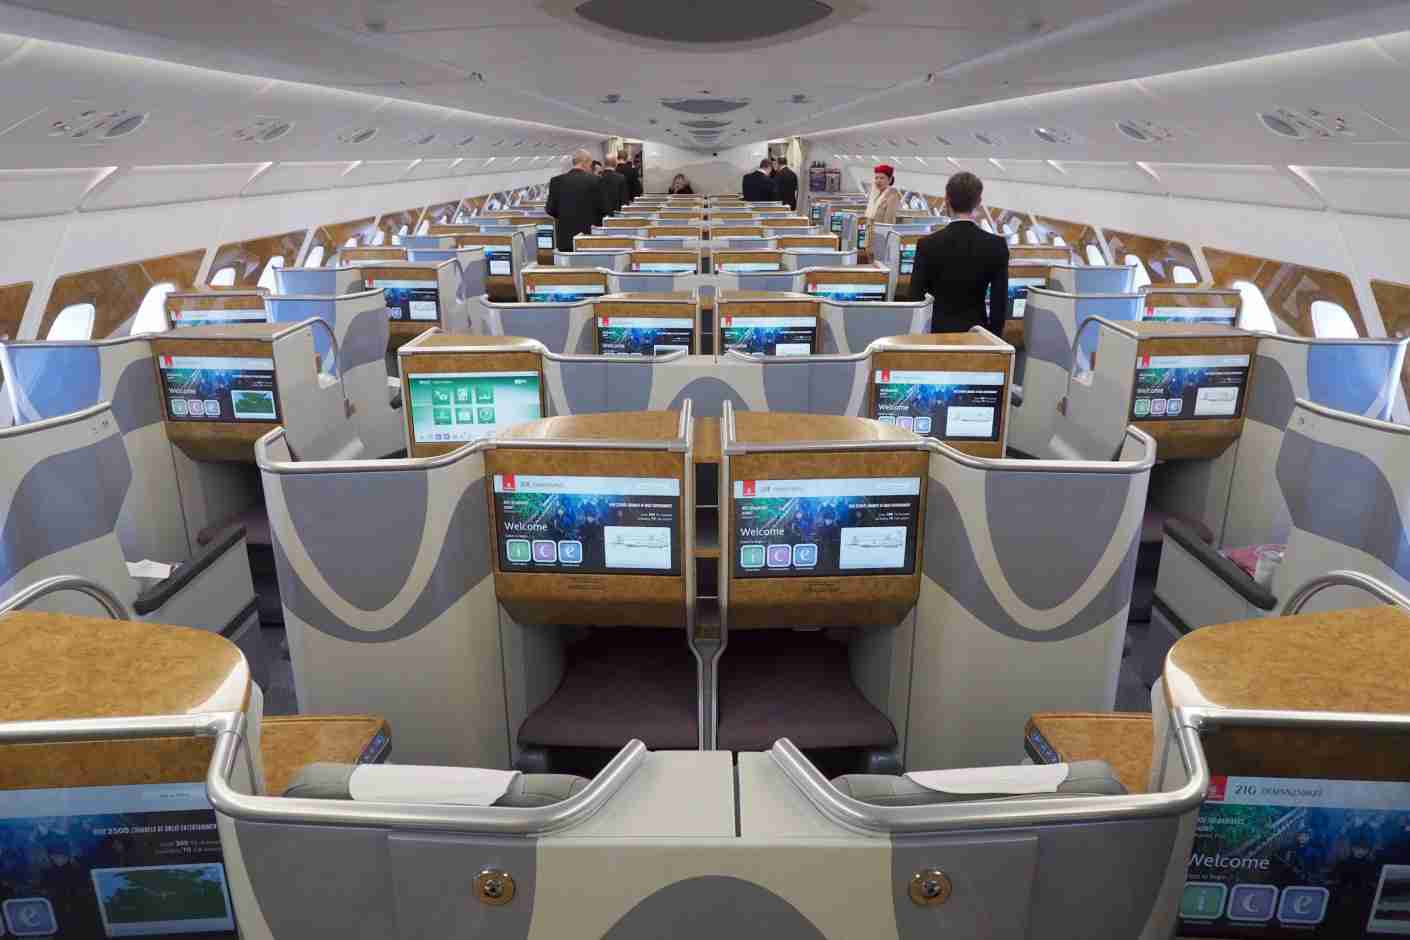 Business class in 1-2-1 layout on the upper deck of an Emirates A380. Photo by Zach Honig / The Points Guy